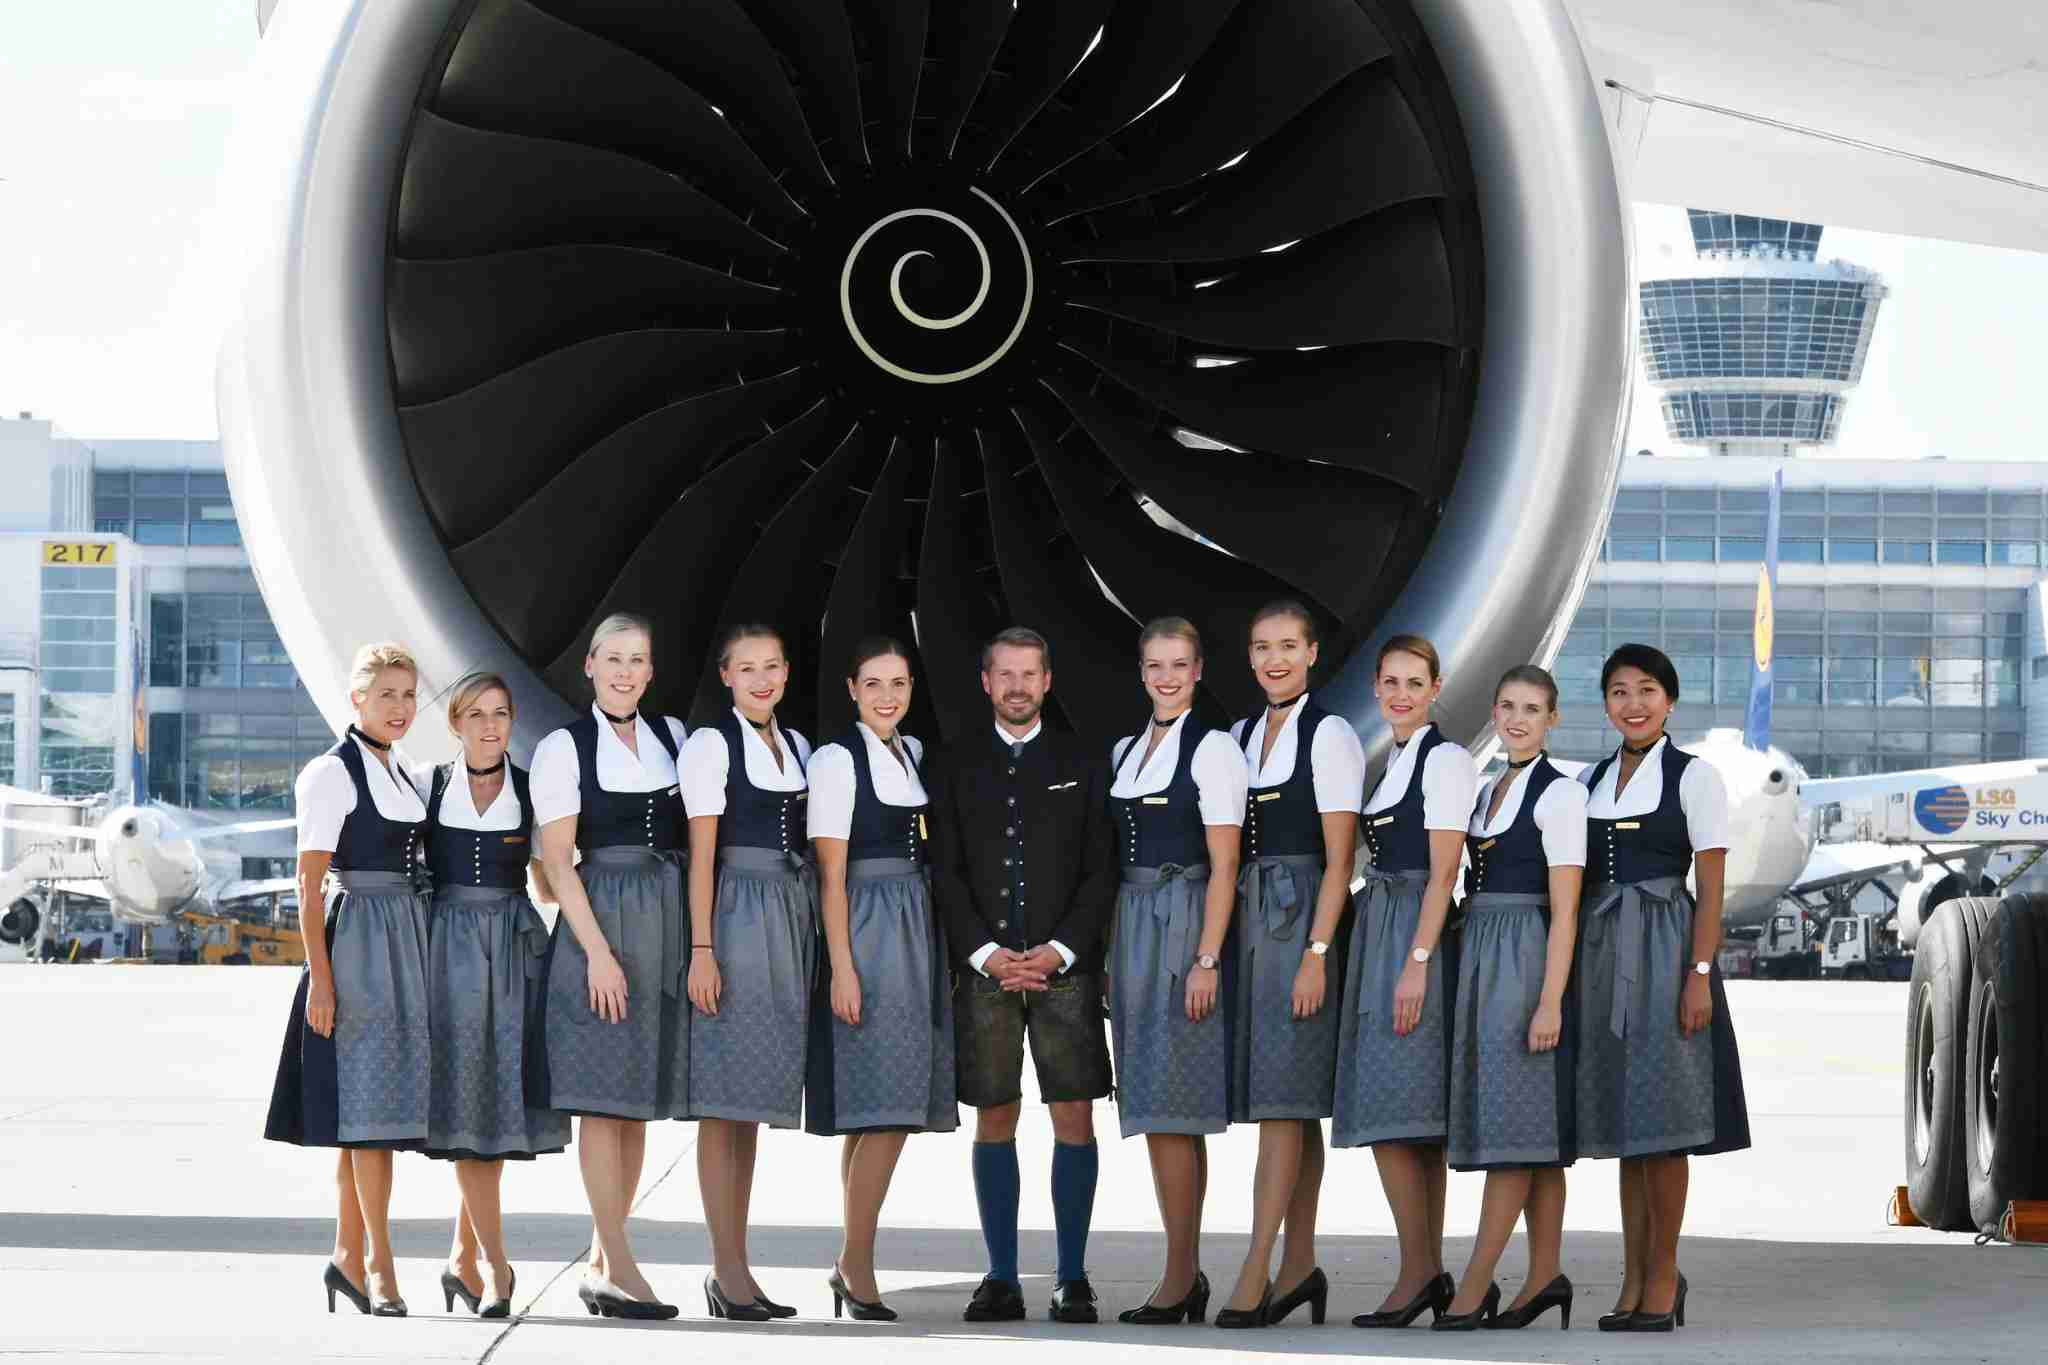 These Bavarian outfits were designed by Munich-based Angermaier. (Photo by Lufthansa)